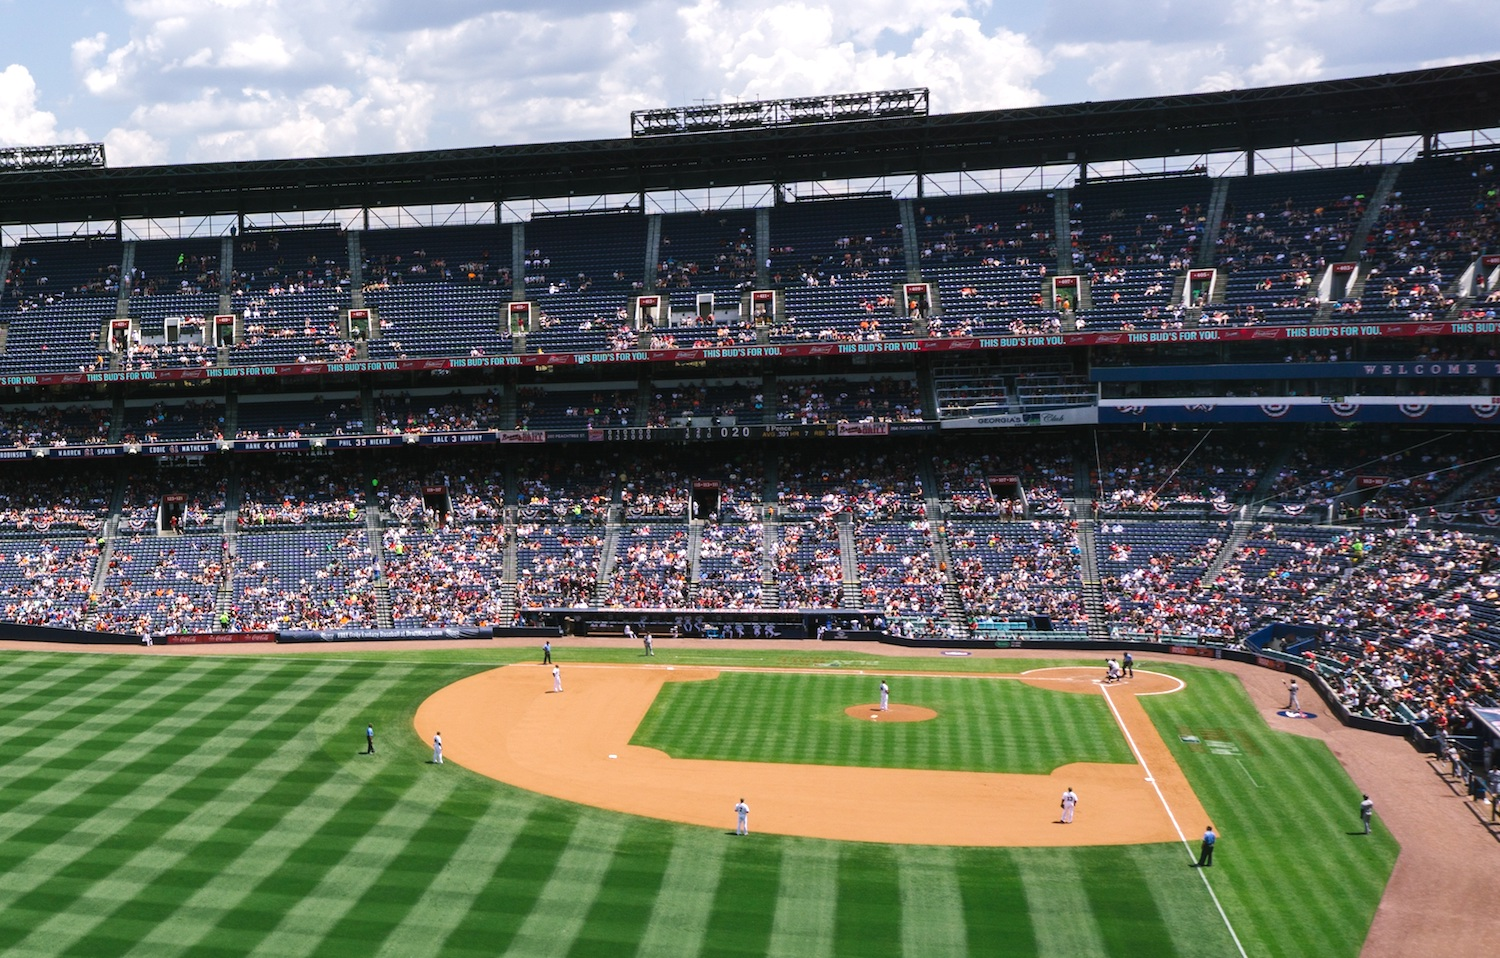 5 Things Churches Can Learn From Baseball Parks